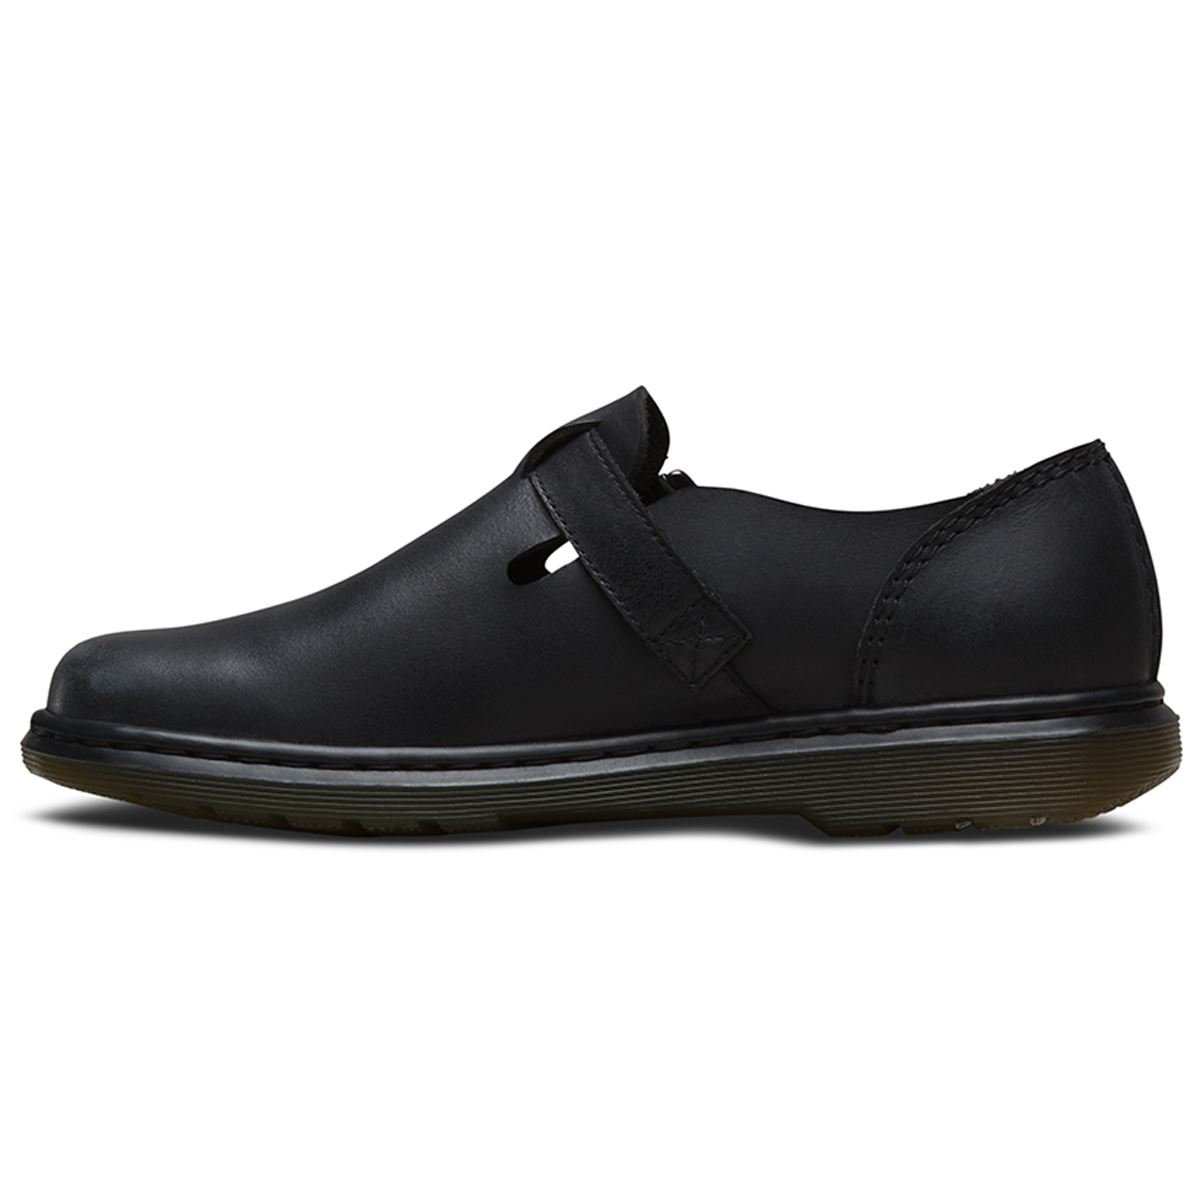 Dr. Martens Women's Patricia Buckle Casual Oxfords, Black Leather, 7 M UK, 9 M US